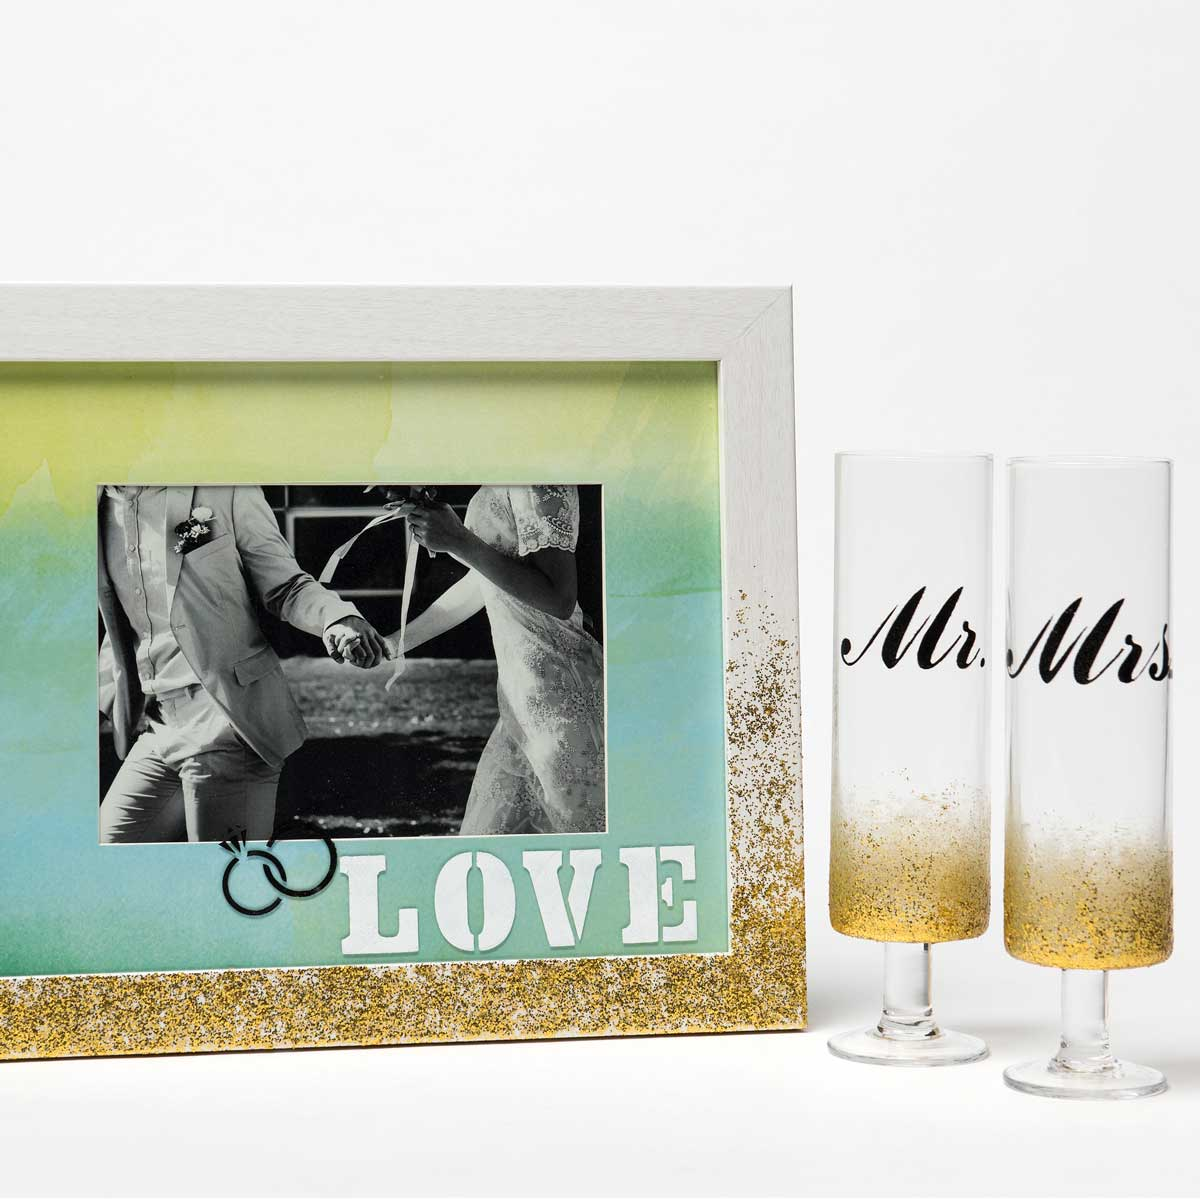 FolkArt ® Peel & Stick Painting Stencils - Our Wedding